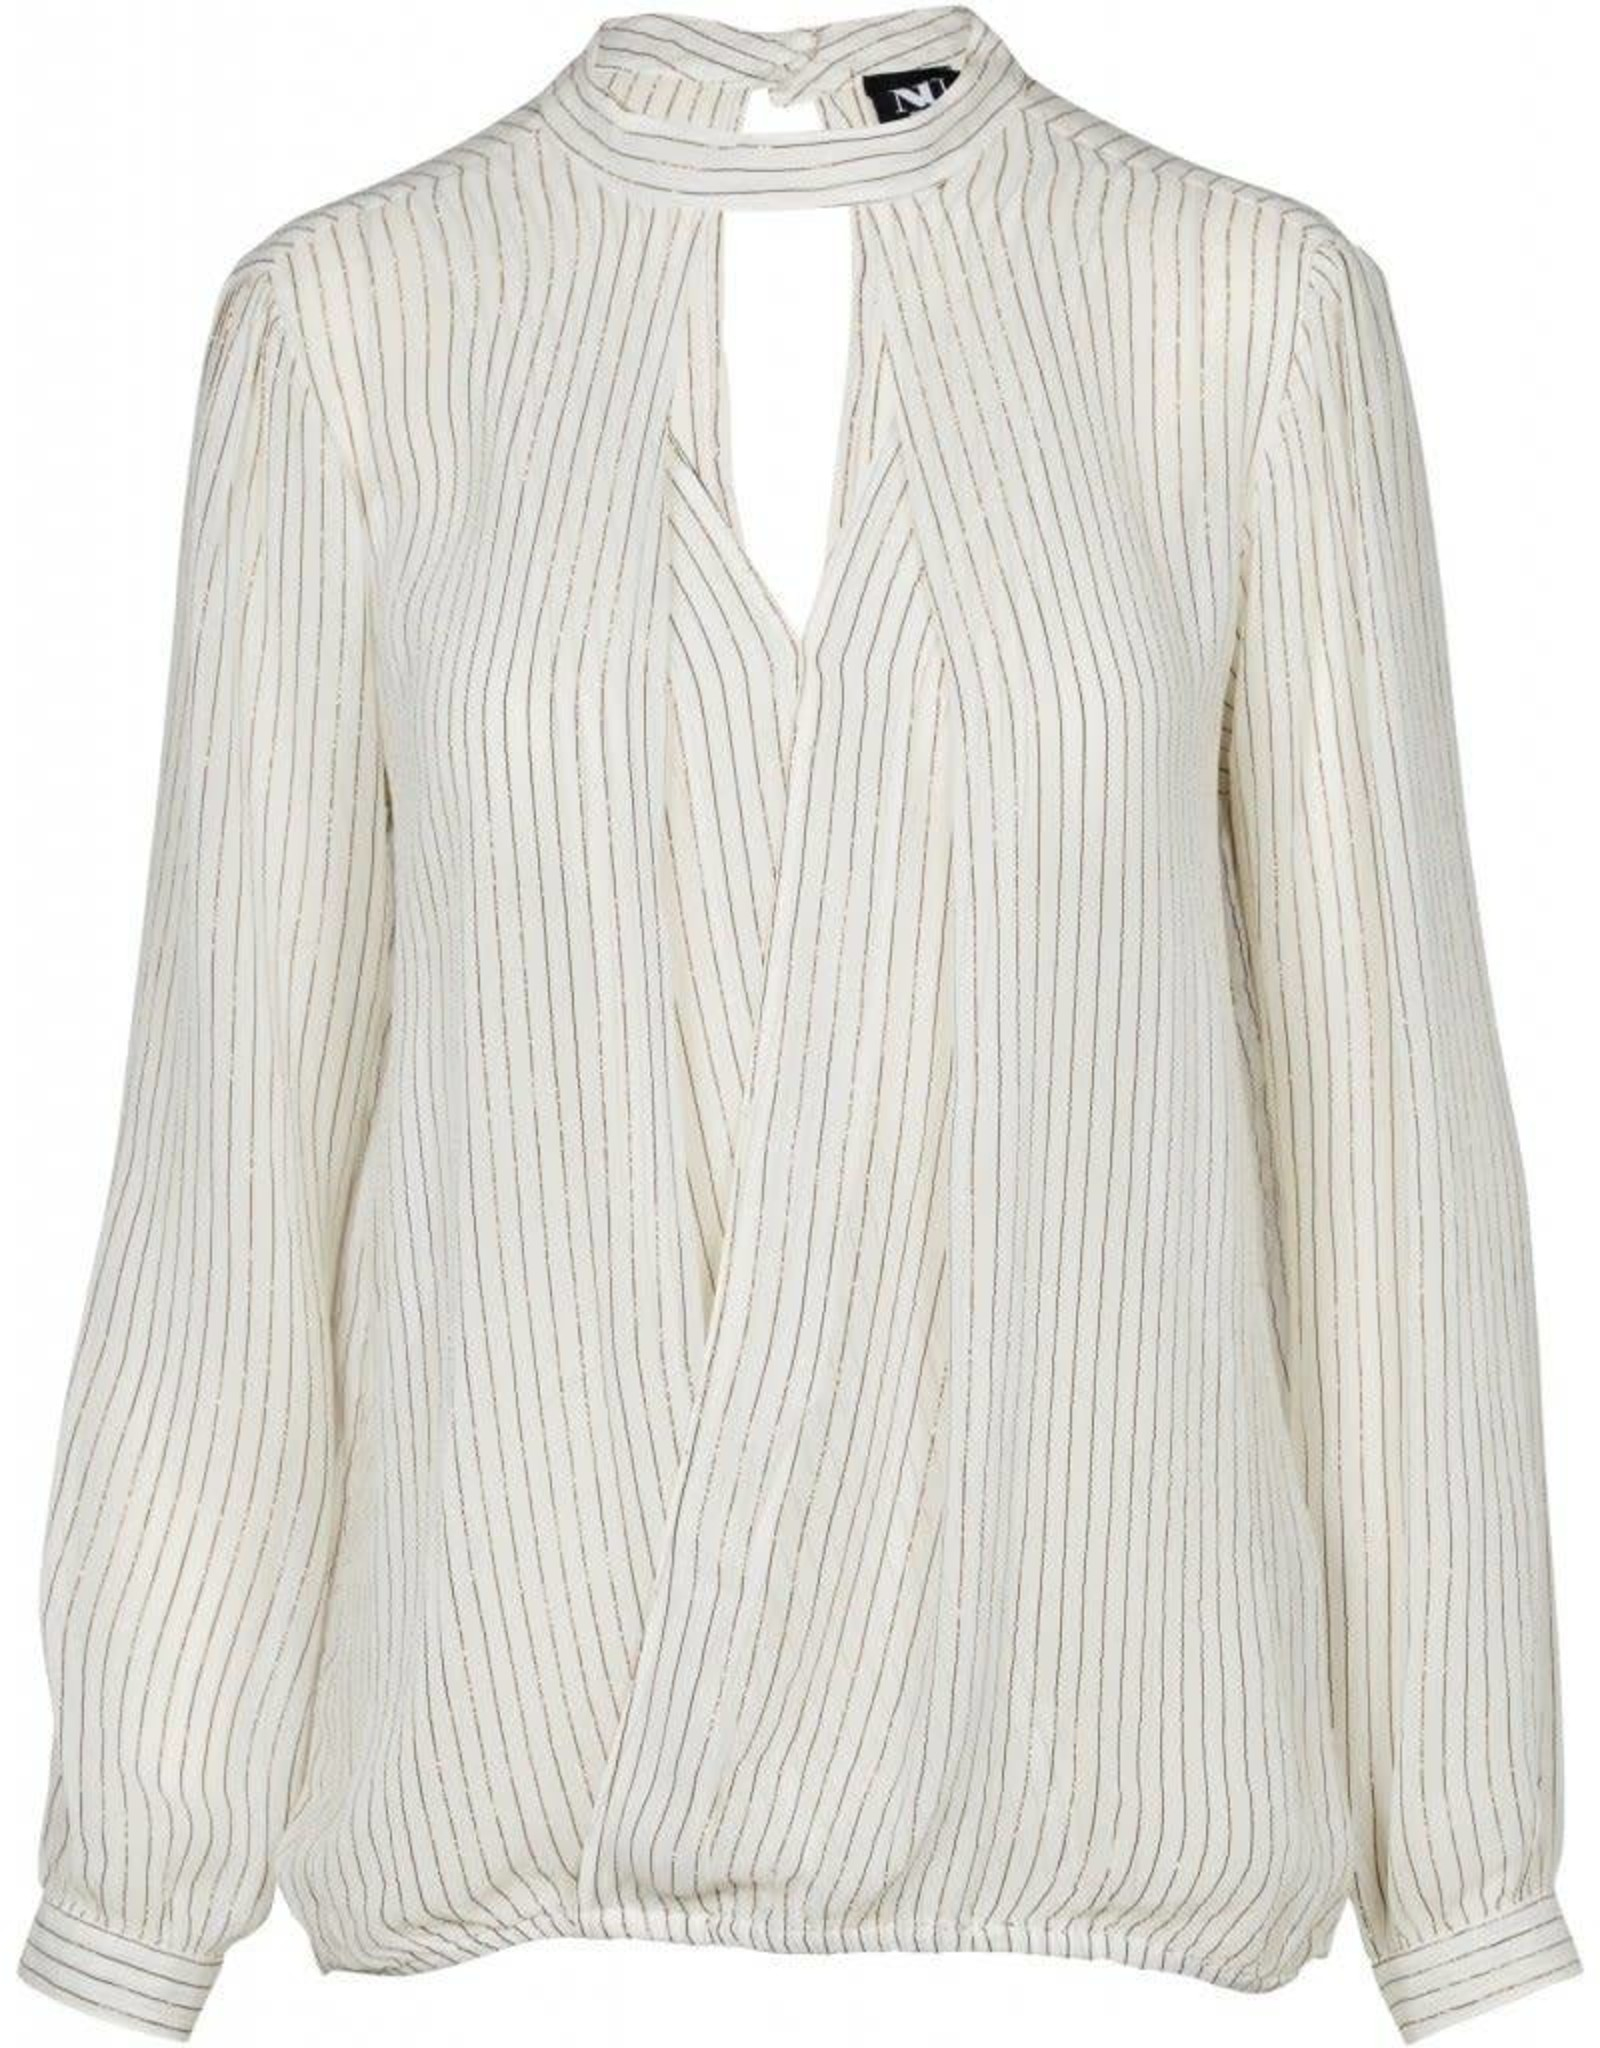 NÜ Denmark Striped Blouse